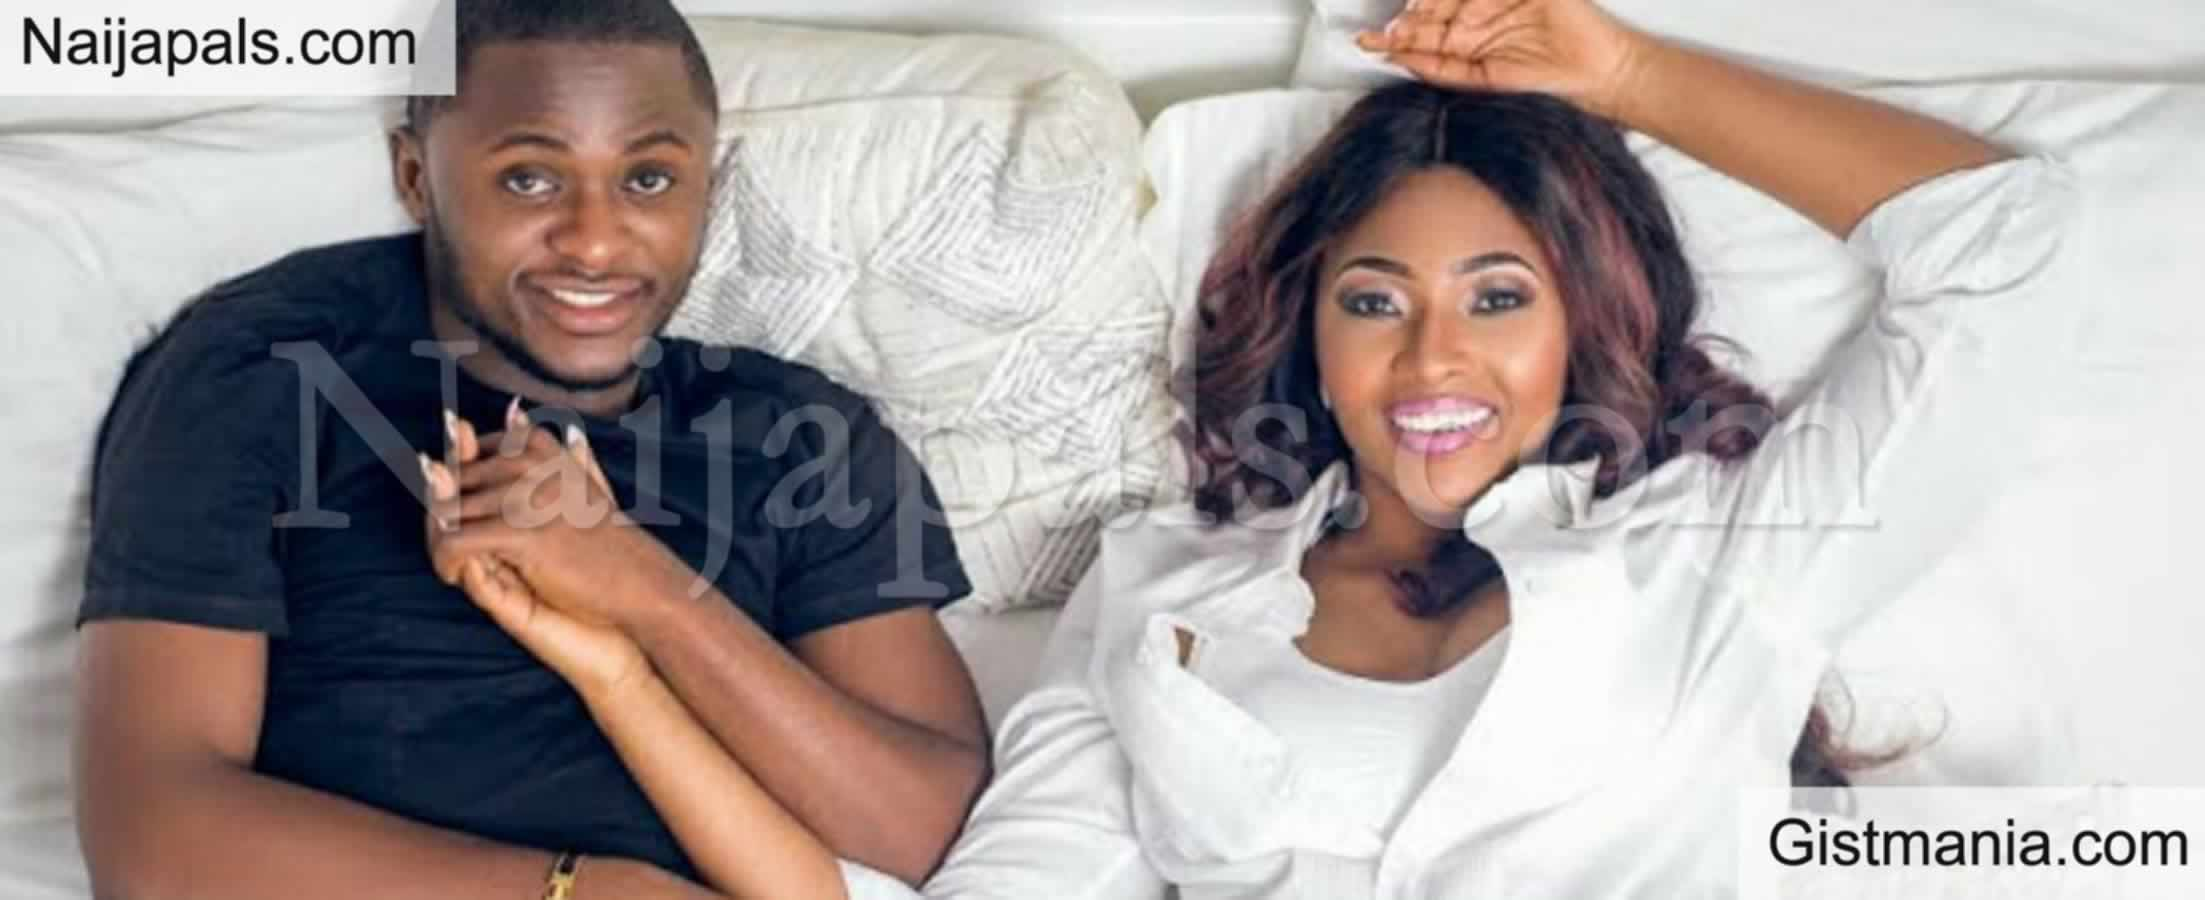 "<img alt='.' class='lazyload' data-src='https://img.gistmania.com/emot/comment.gif' /><b> ""I'm Single, I Have The Right To Associate"" - Ubi Franklin Speaks On His Relationship, Warns Critics</b>"